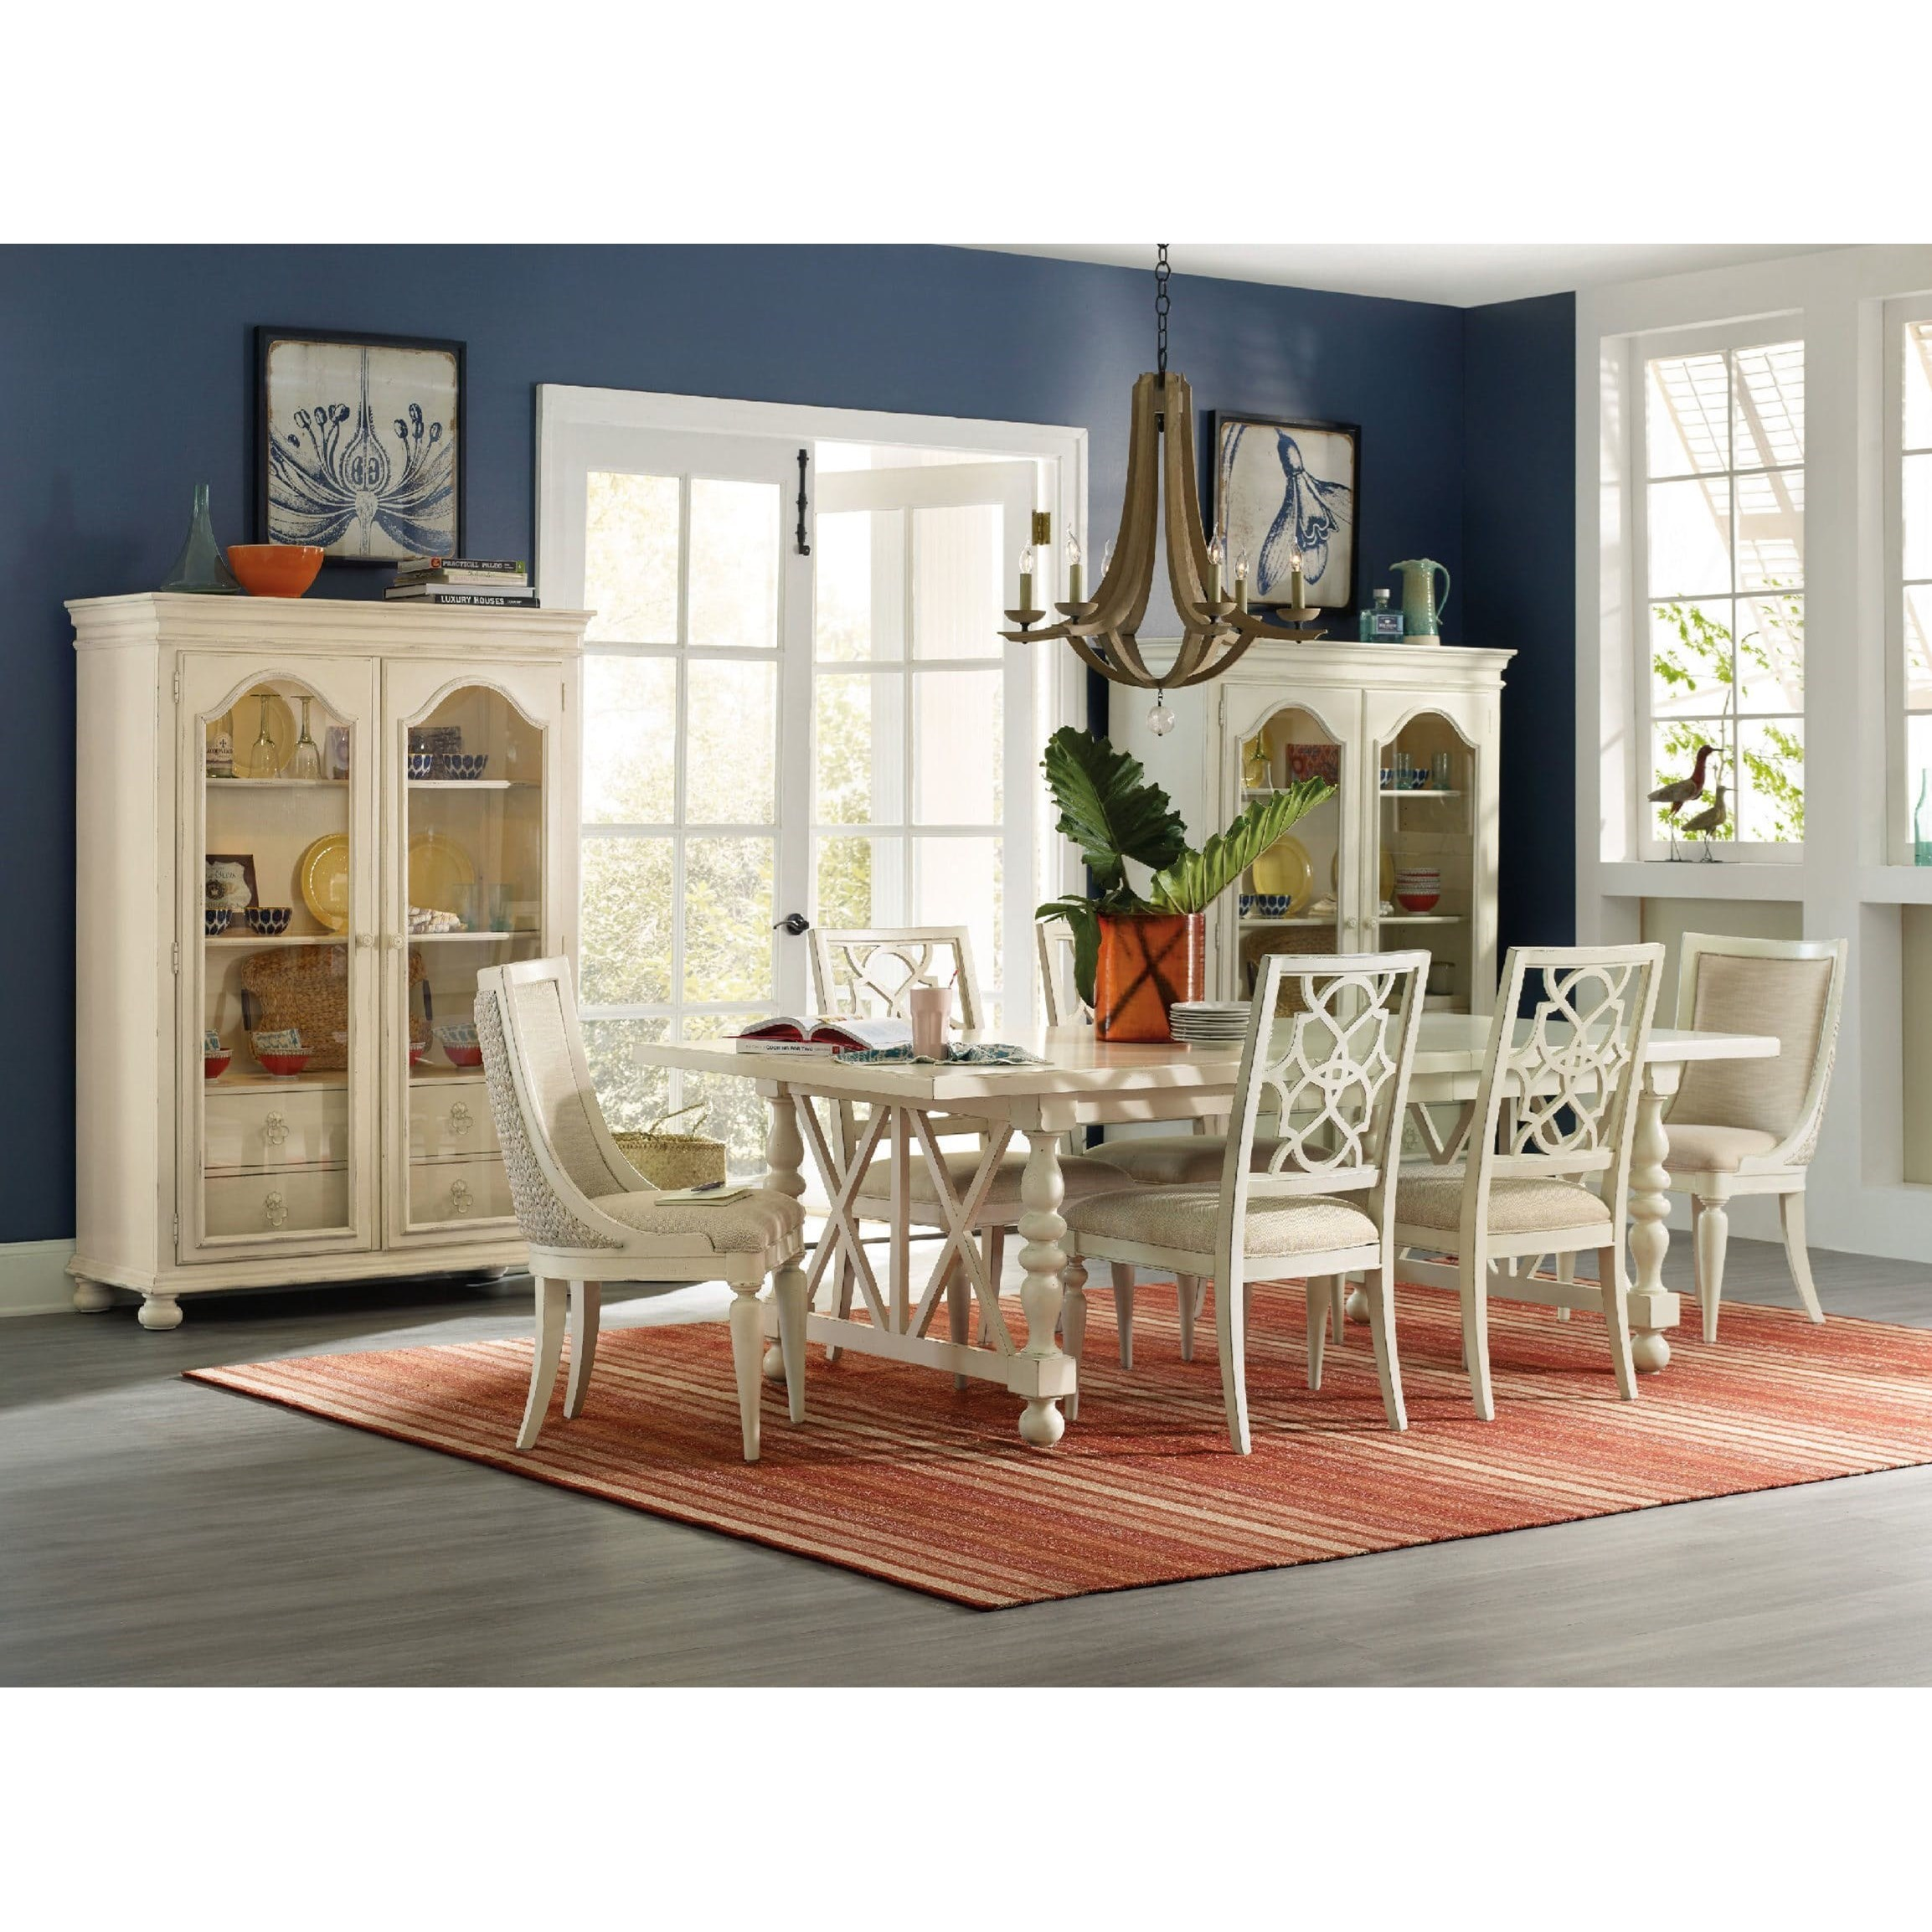 Hooker Furniture Sandcastle Dining Room Group - Item Number: 5900 Dining Room Group 1